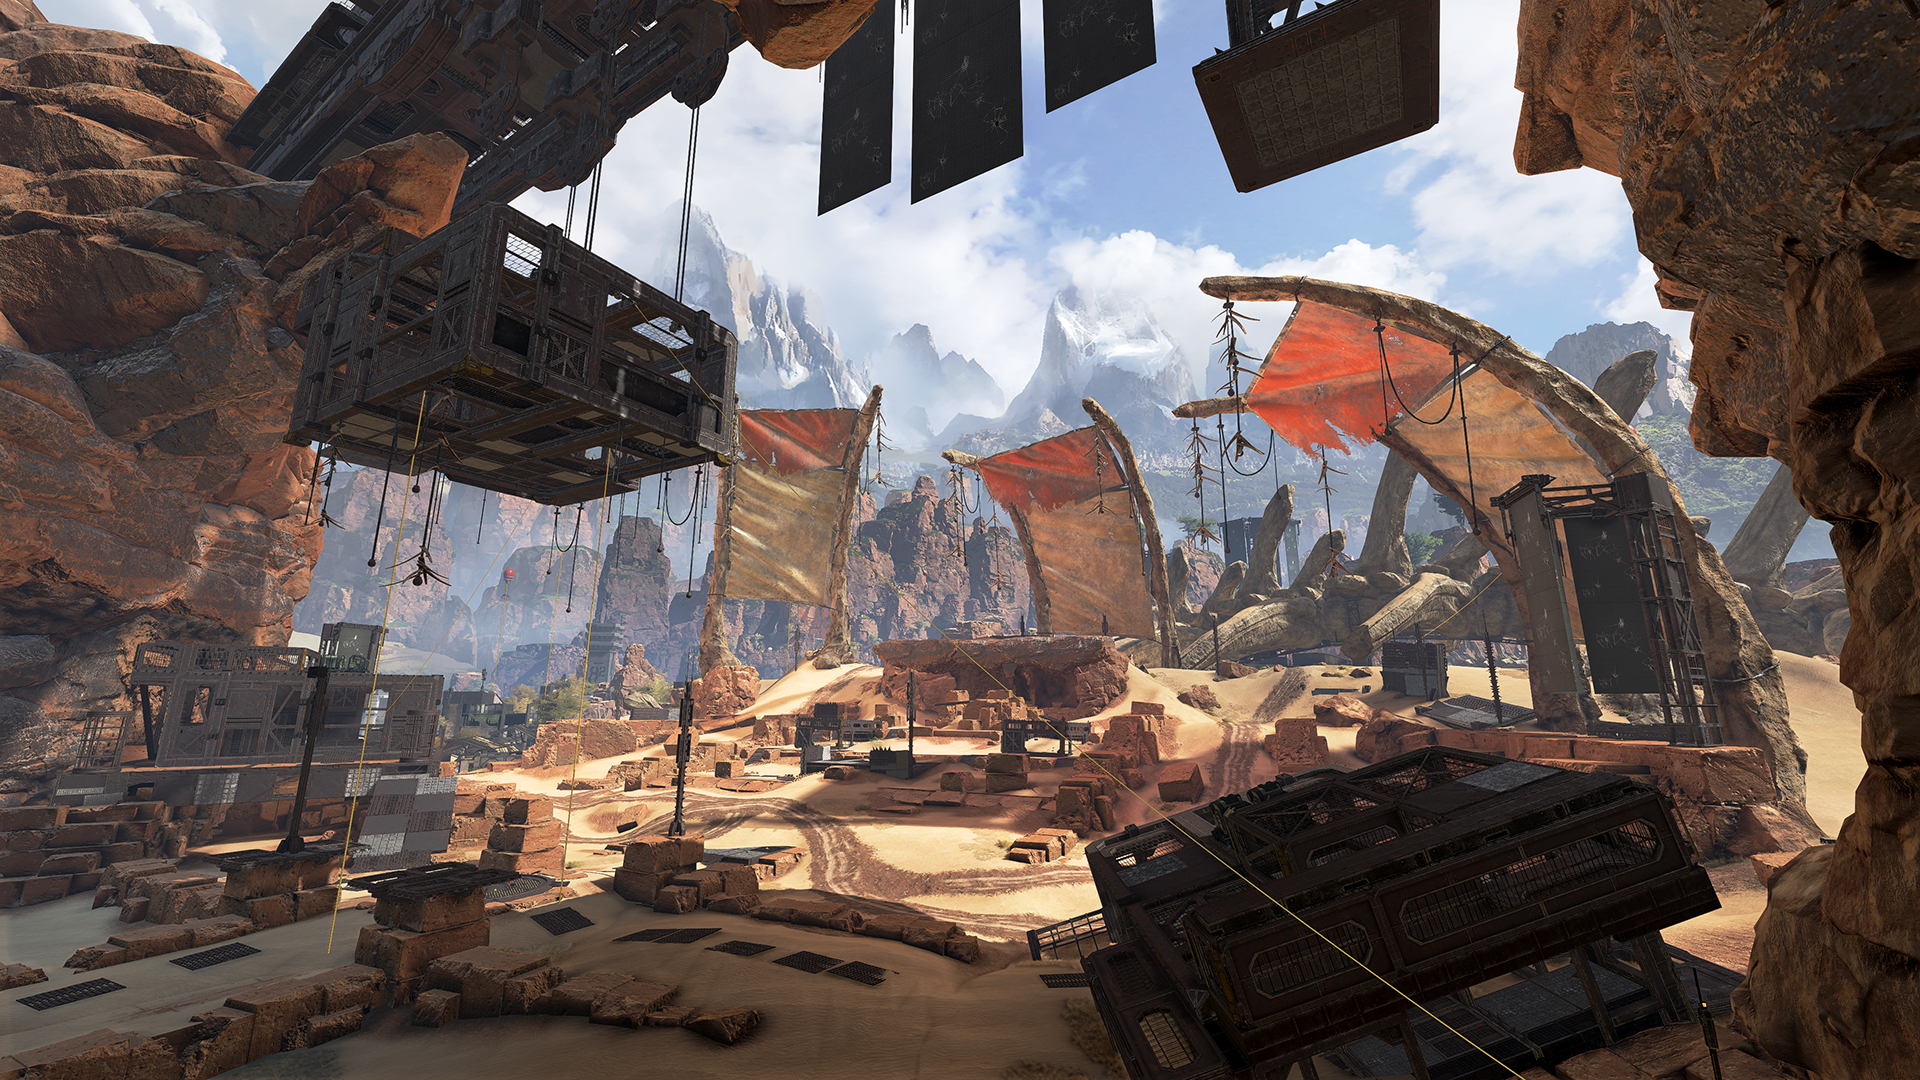 991701 - Apex Legends Thunderdome Hd - Apex wallpaper 4k 2019, Apex phone wallpaper hd 4k, Apex legends wallpaper phone, Apex legends wallpaper hd 4kwallpaper, apex legends characters wallpaper hd 4k, Apex legends background hd 4k wallpaper, Apex Legends 4k wallpaper